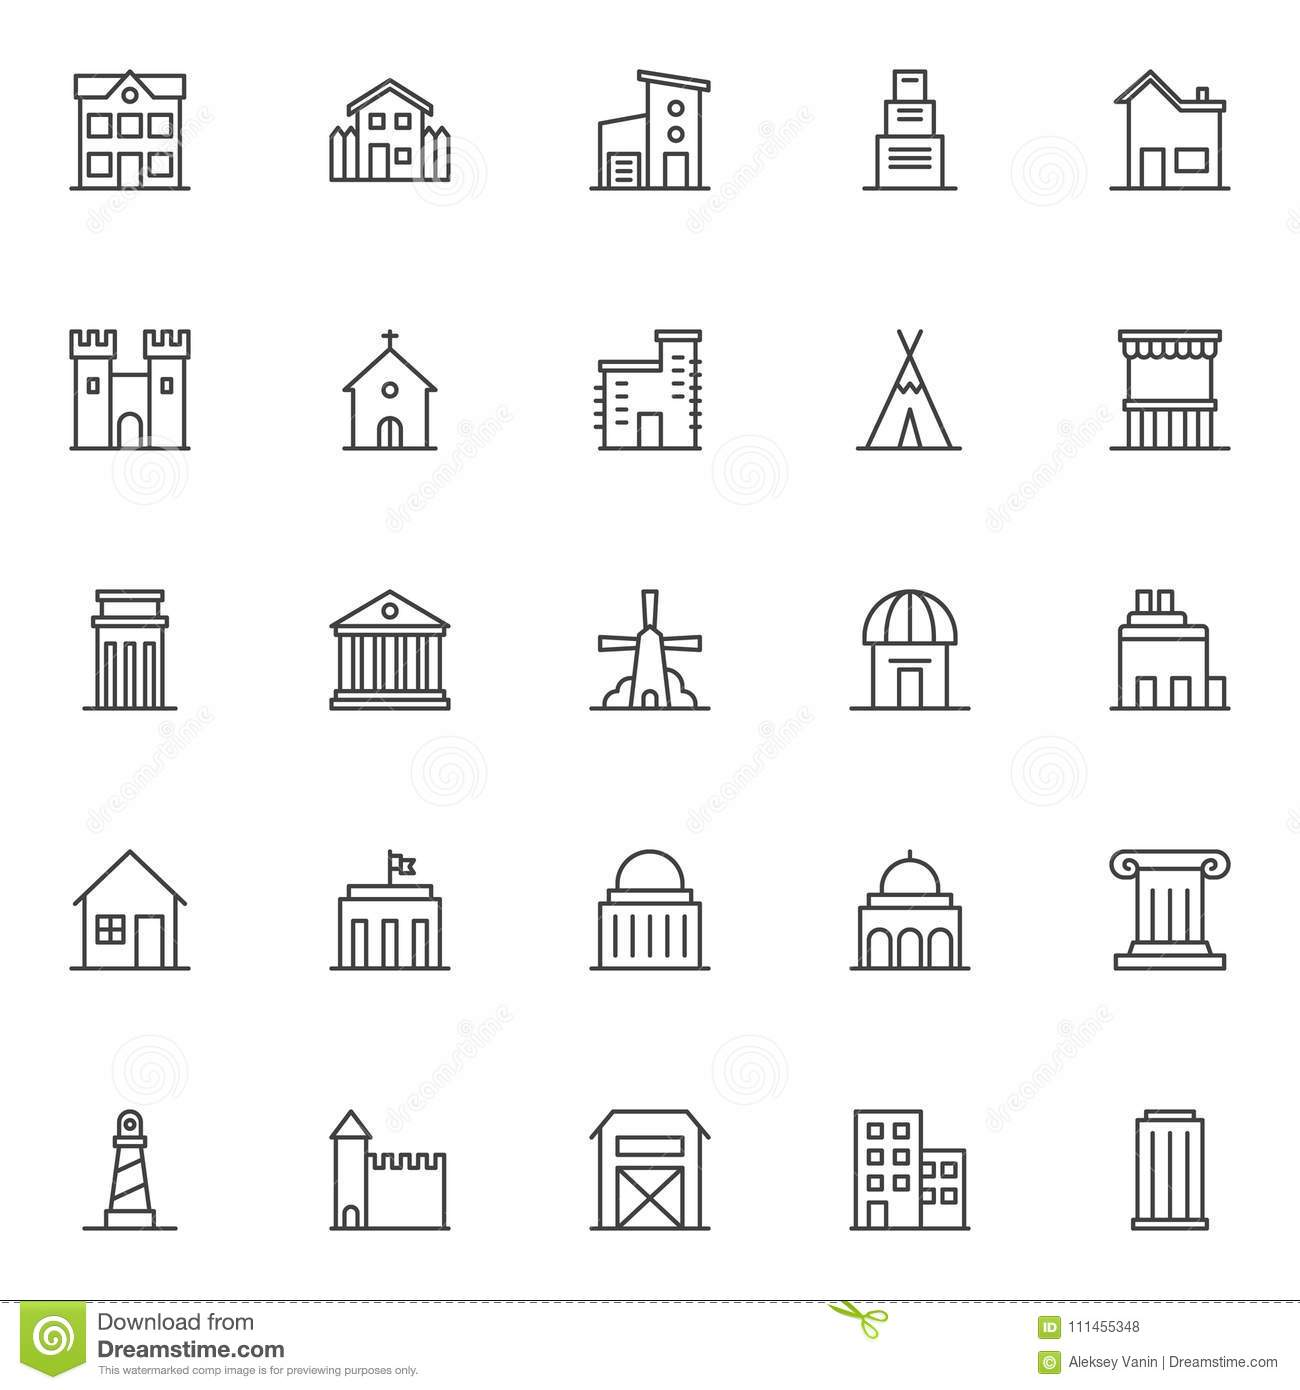 Landmarks and building outline icons set